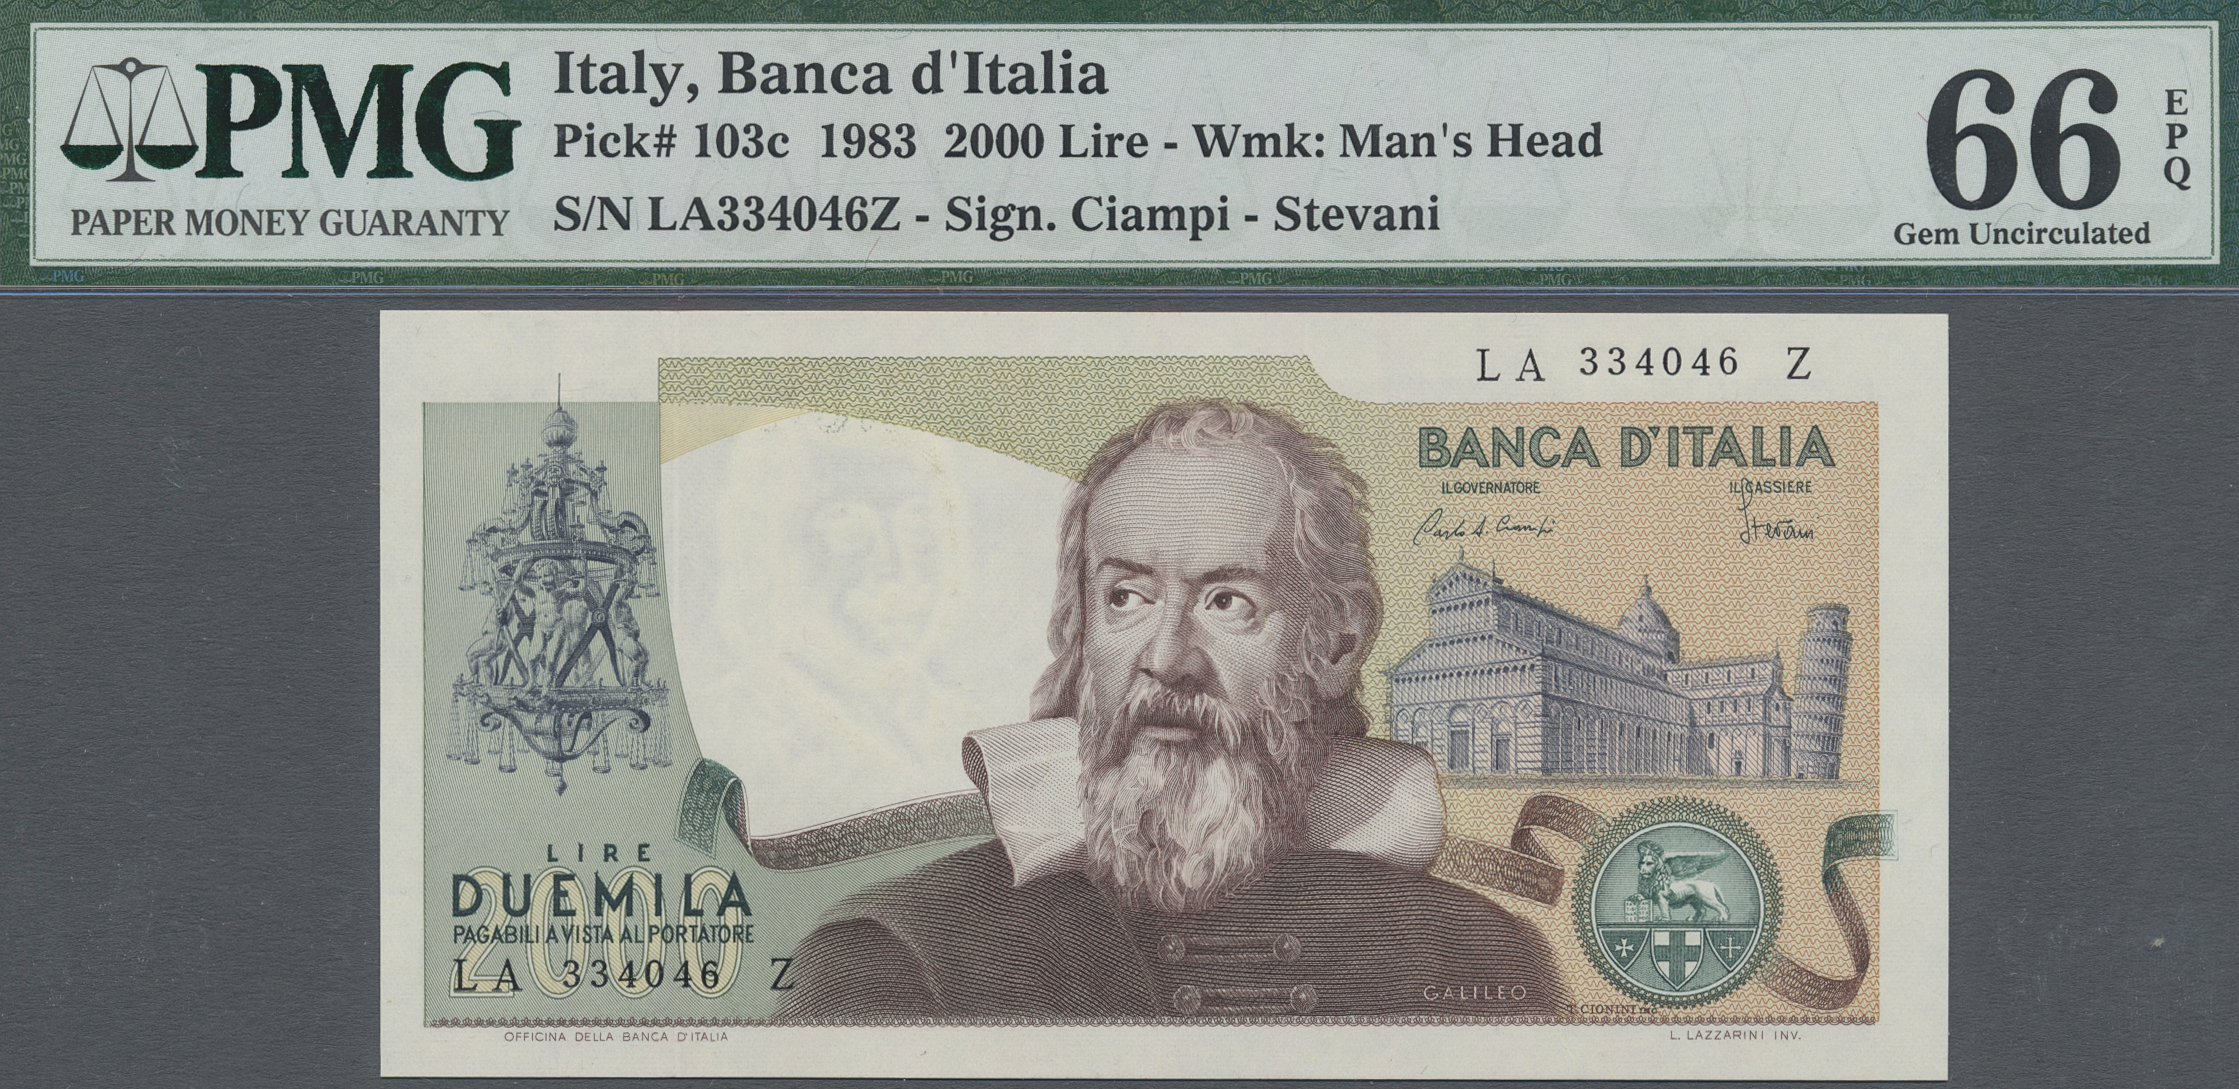 Lot 00461 - Italy / Italien | Banknoten  -  Auktionshaus Christoph Gärtner GmbH & Co. KG Sale #48 The Banknotes